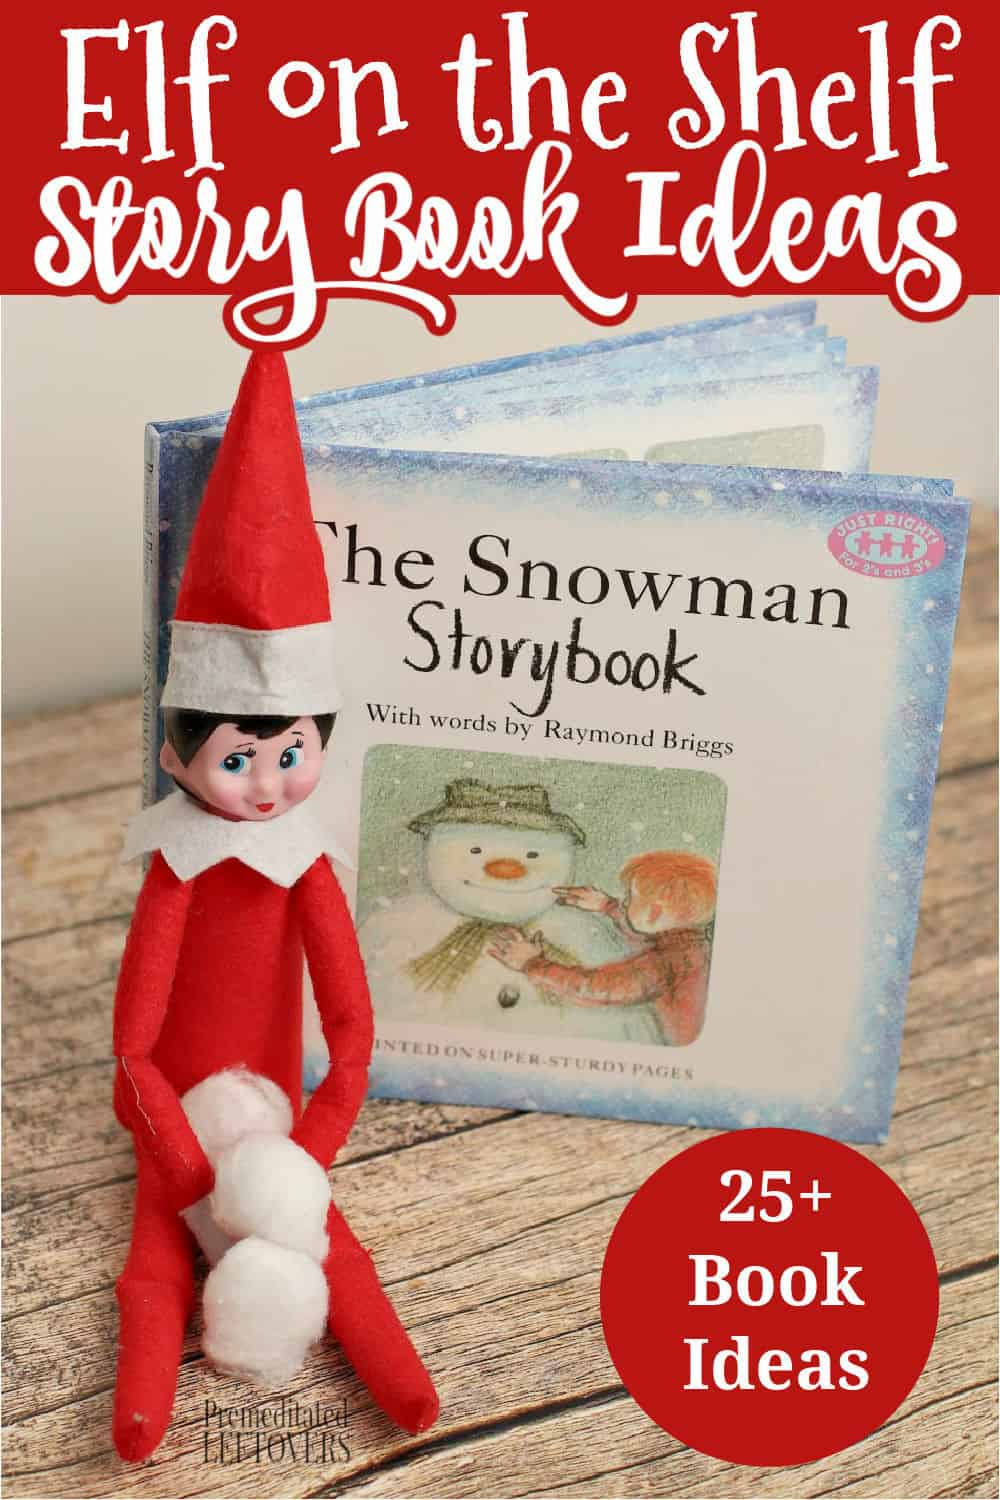 Elf on the Shelf story book idea using The Snowman Storybook